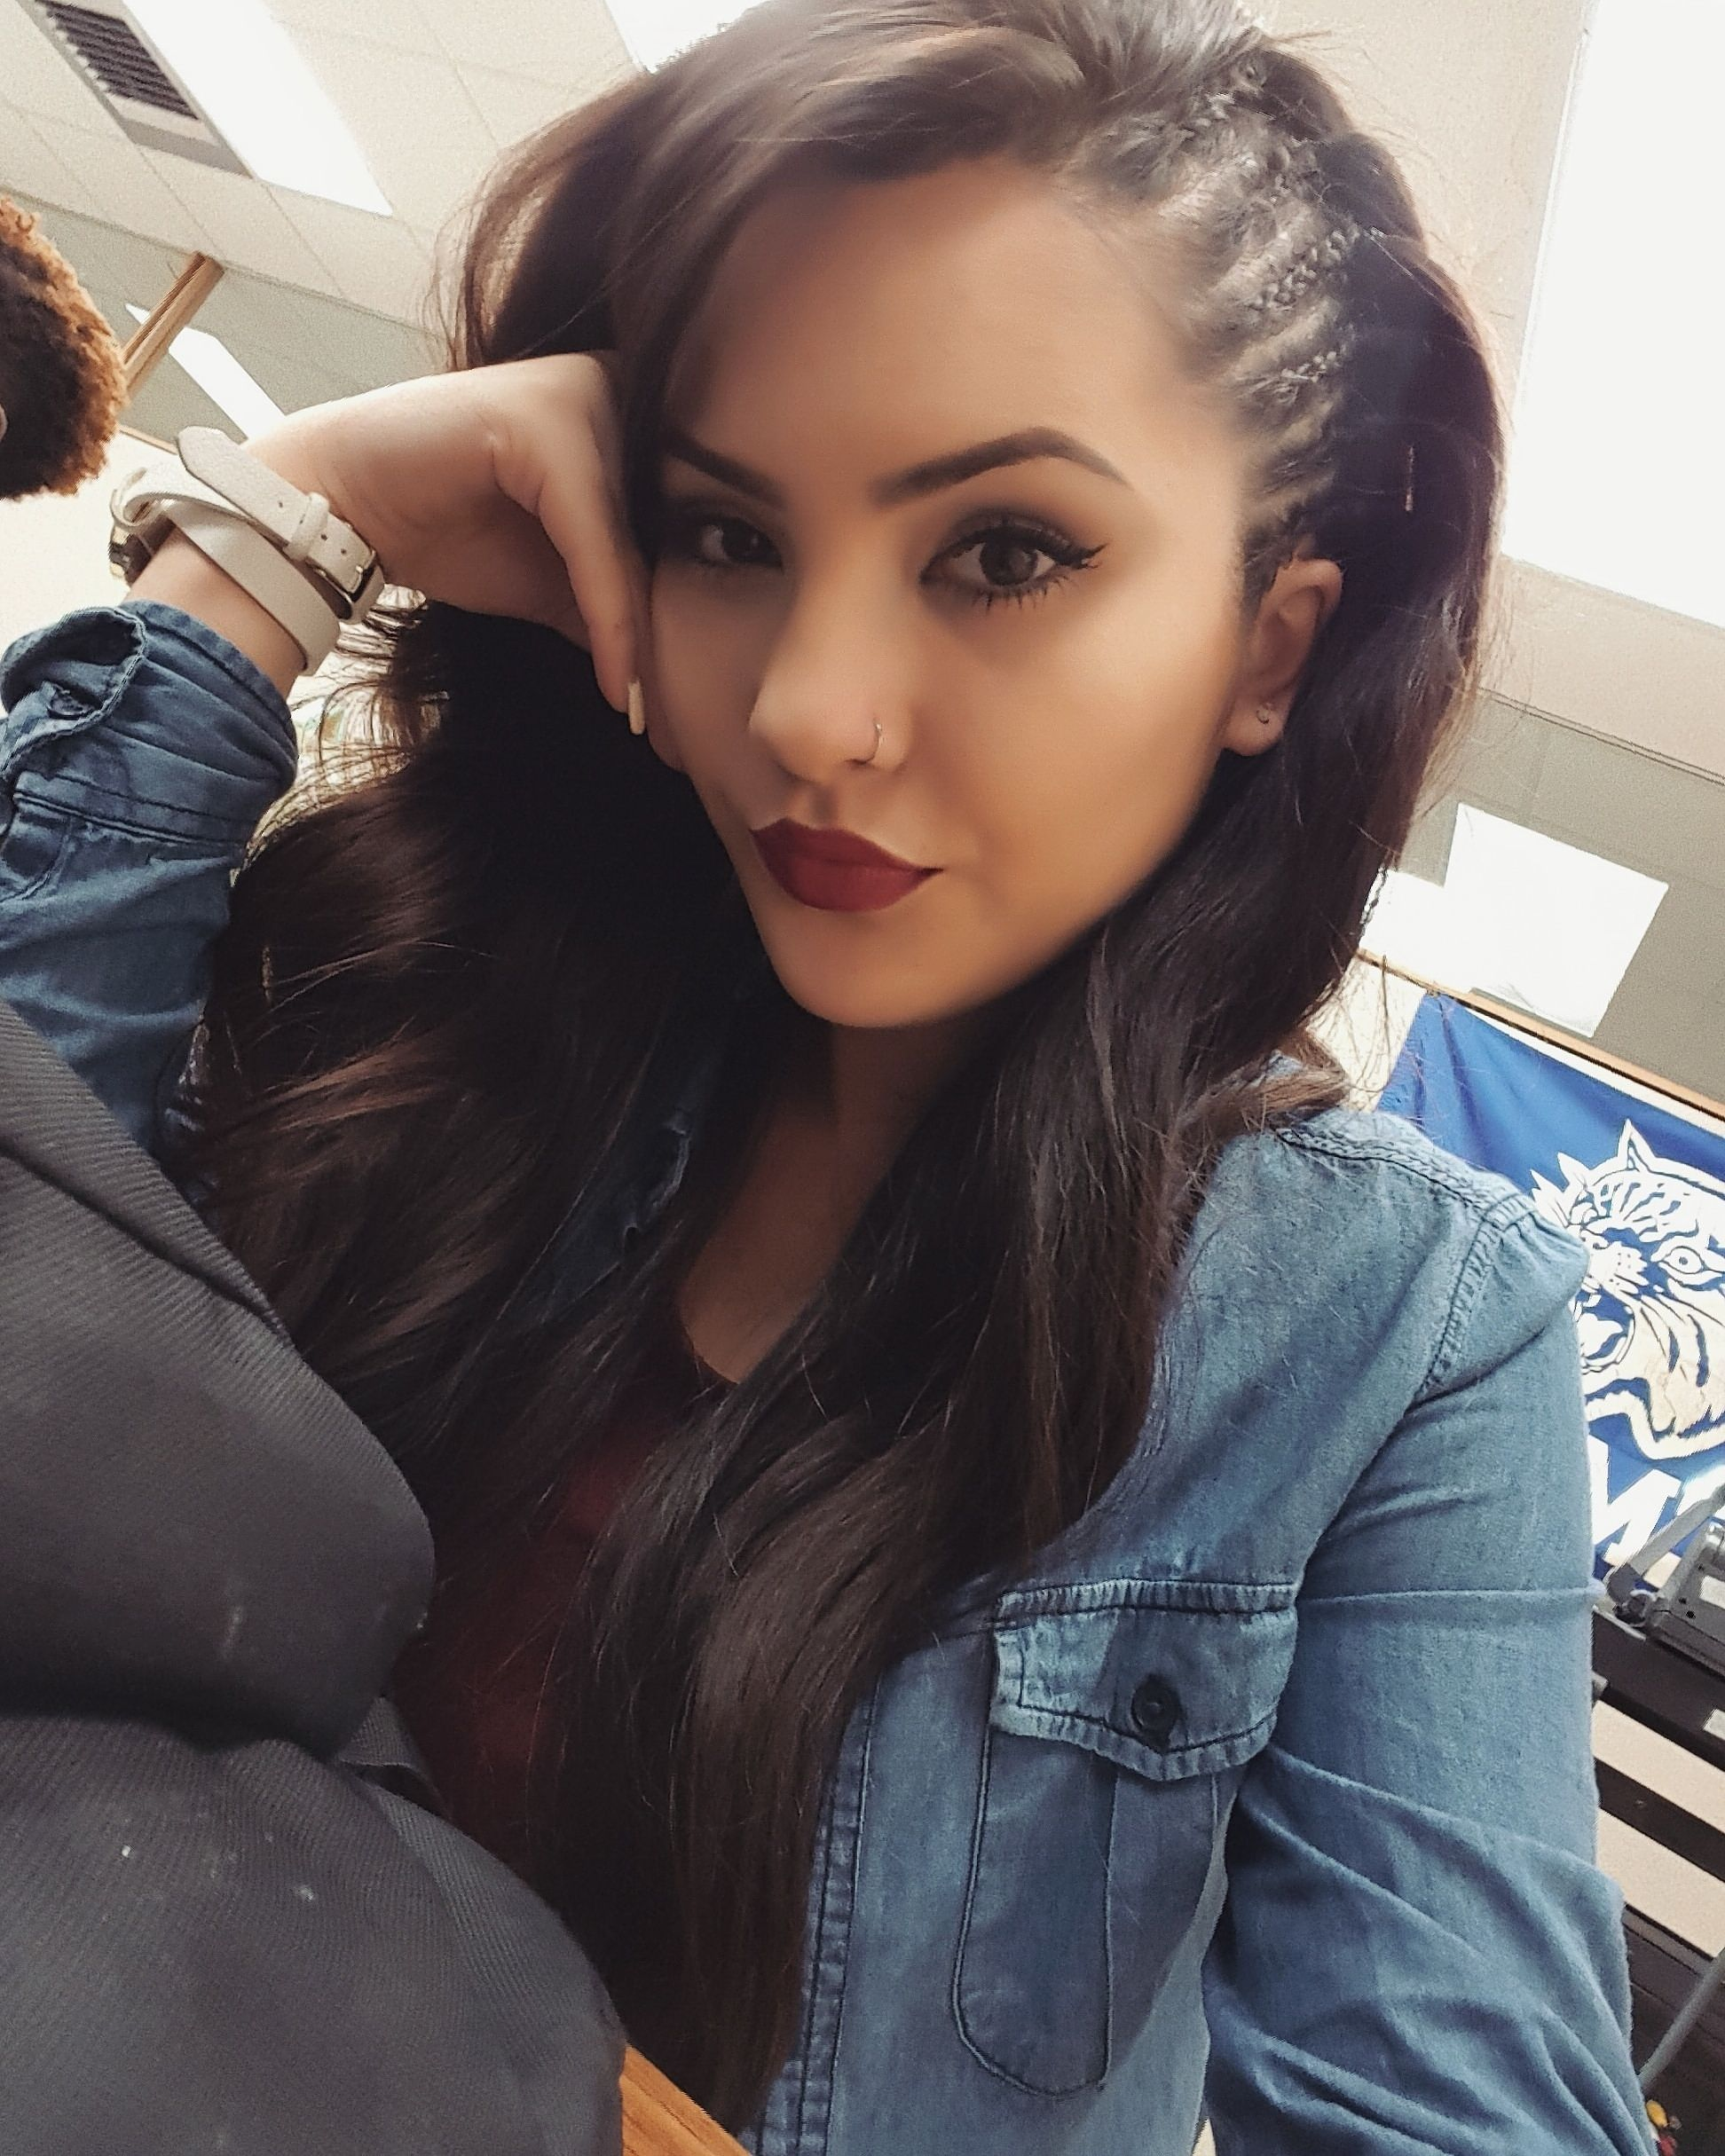 cornrow side braids instagram lilbellla fb isabella